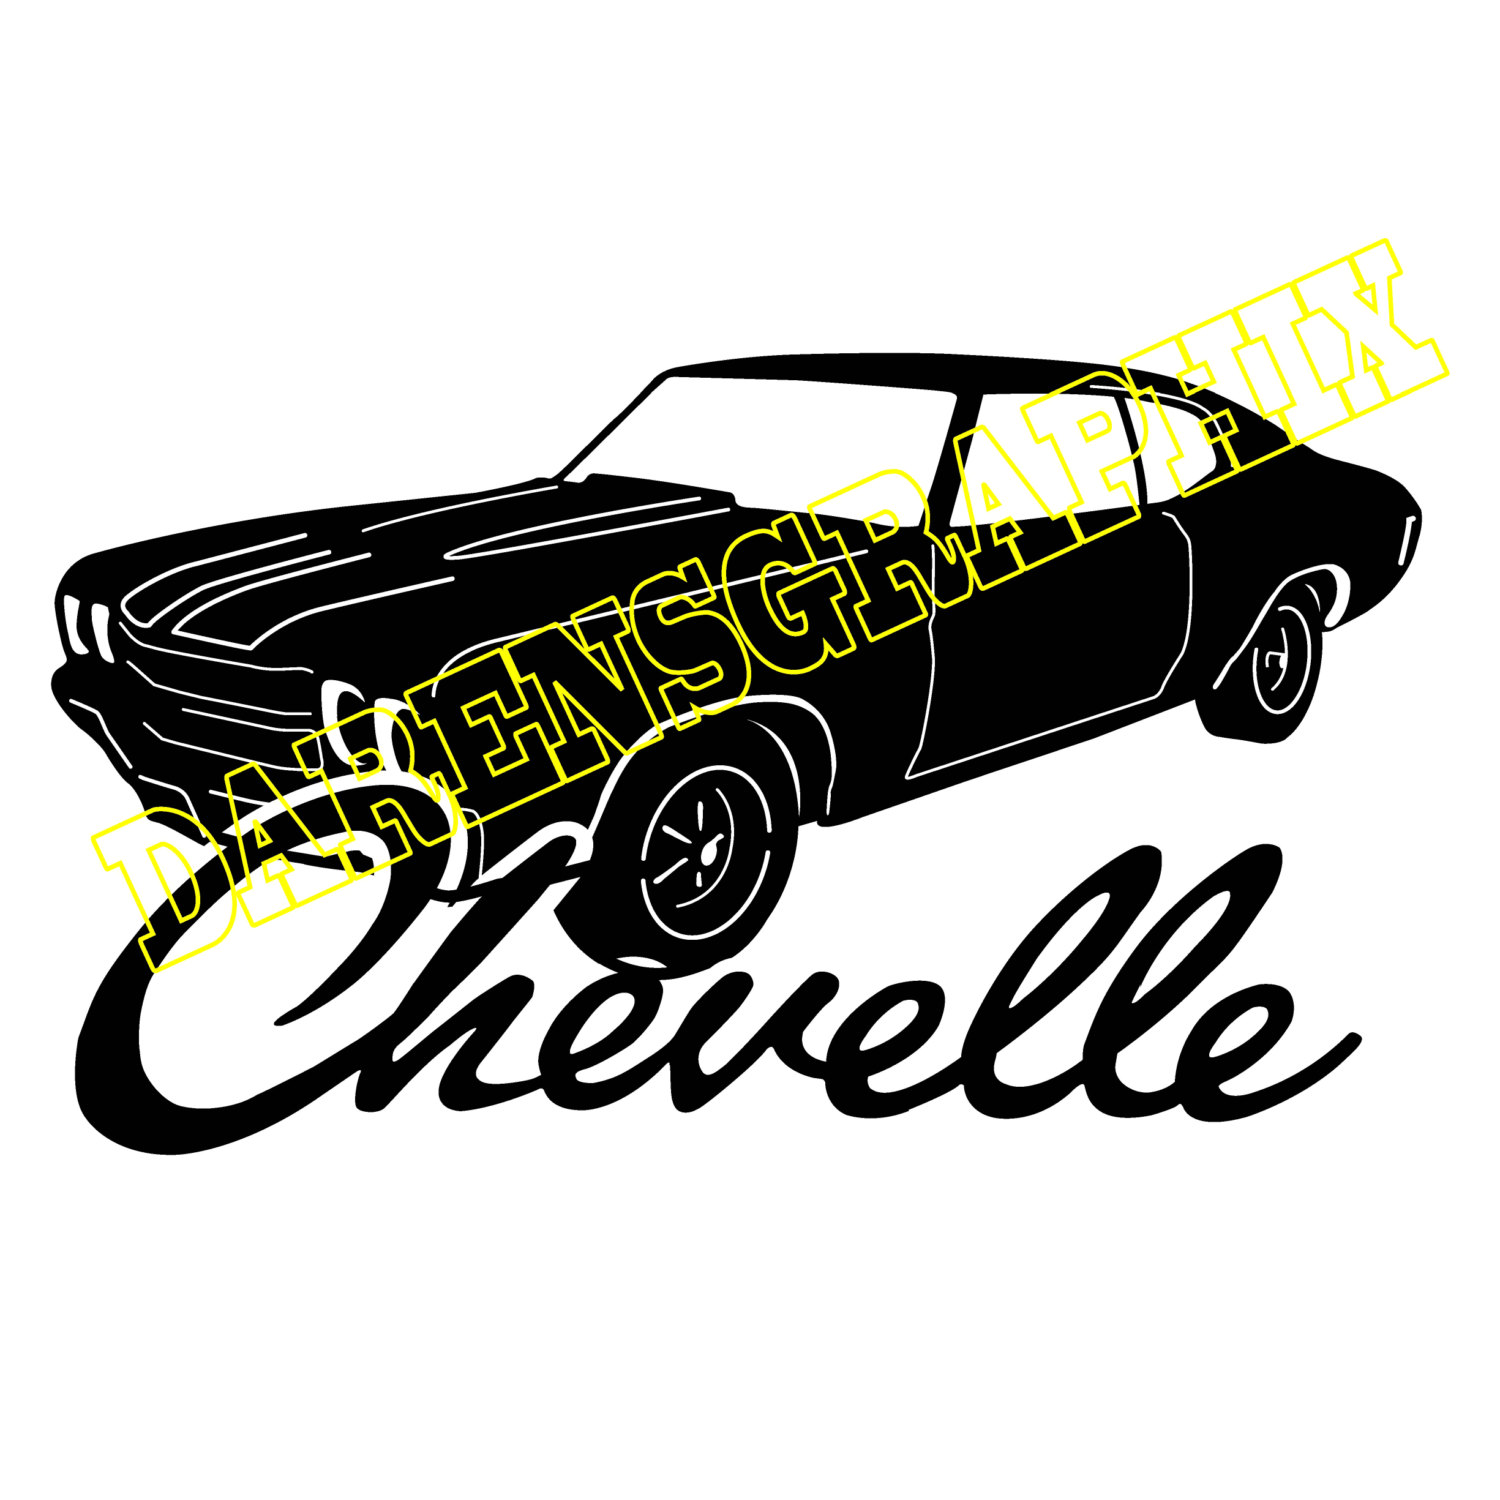 1500x1500 Dxf File Of A Chevy Chevelle For Use With A Cnc Machine